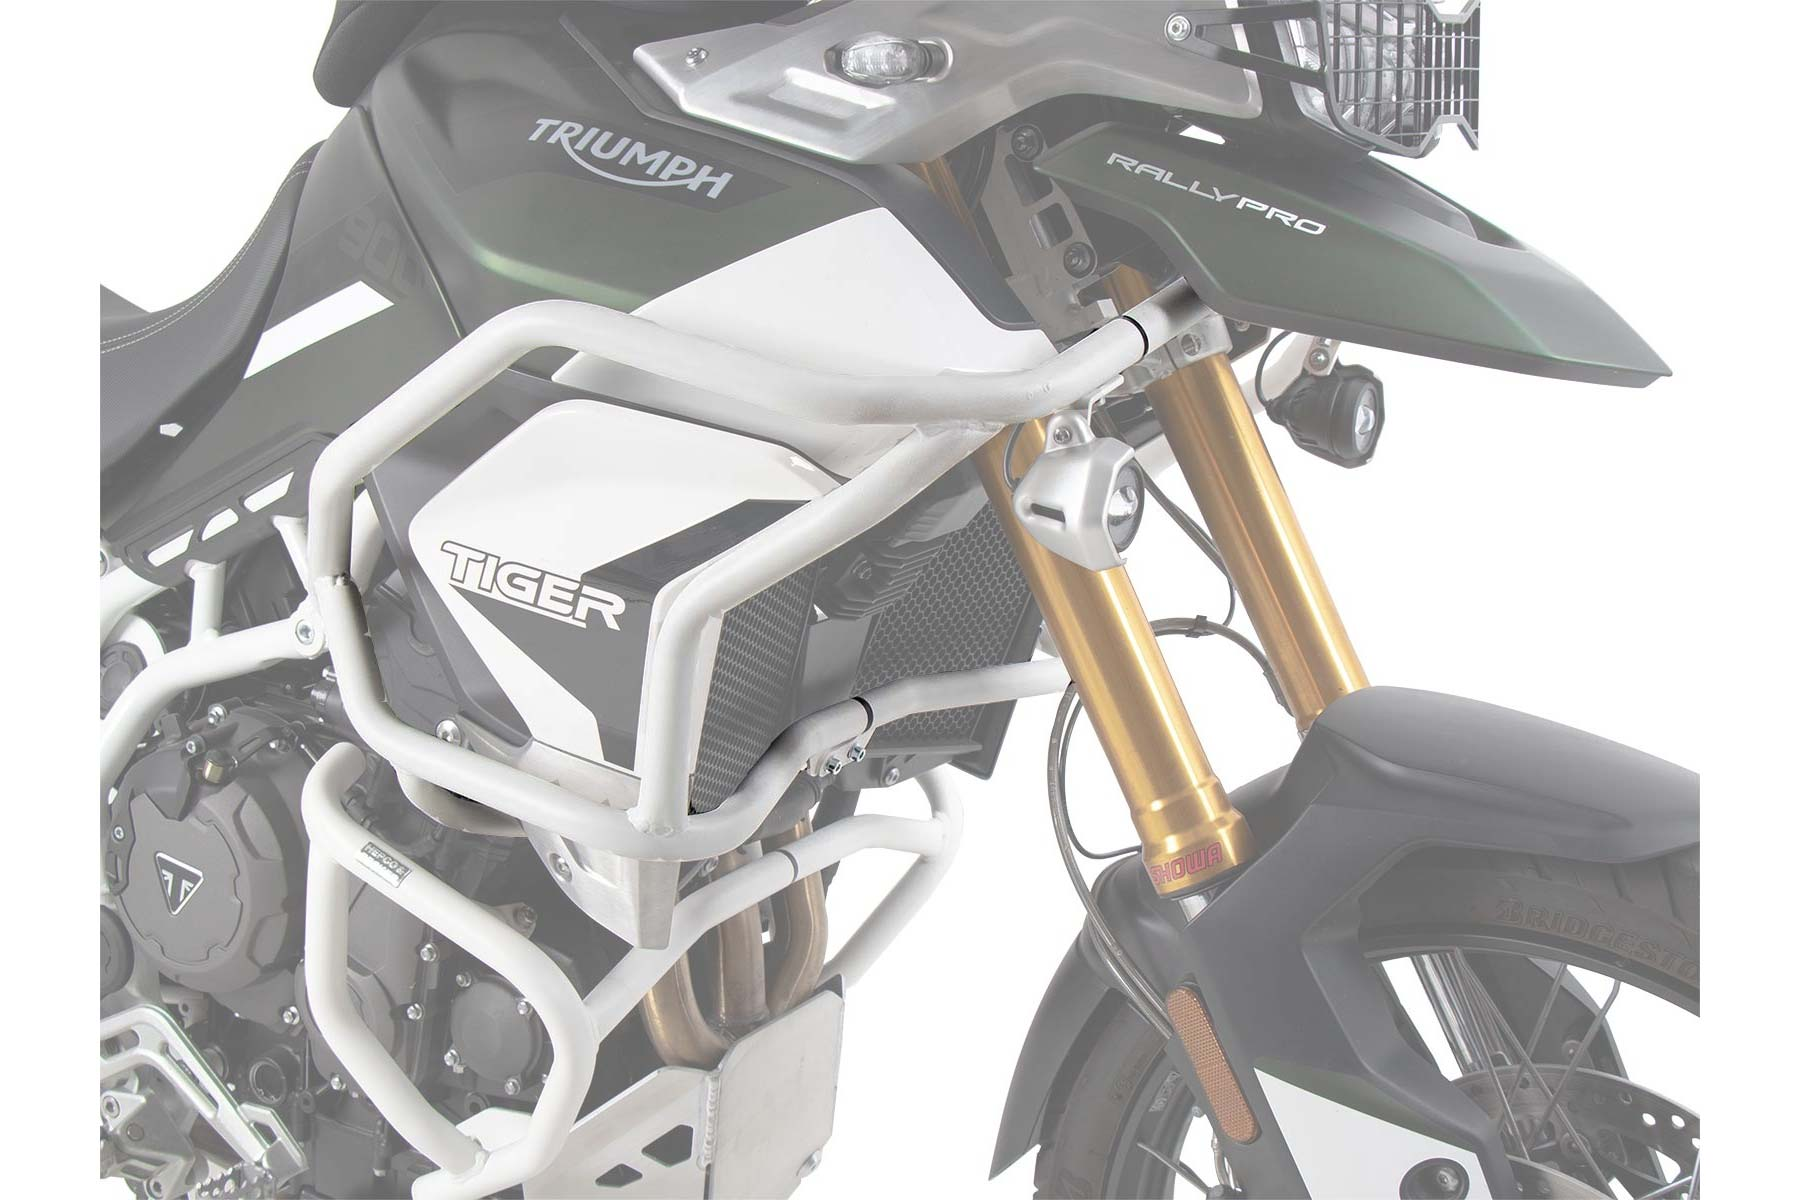 Triumph Tiger 850 & 900 Protection - Tank Guard SOLID (Steel)